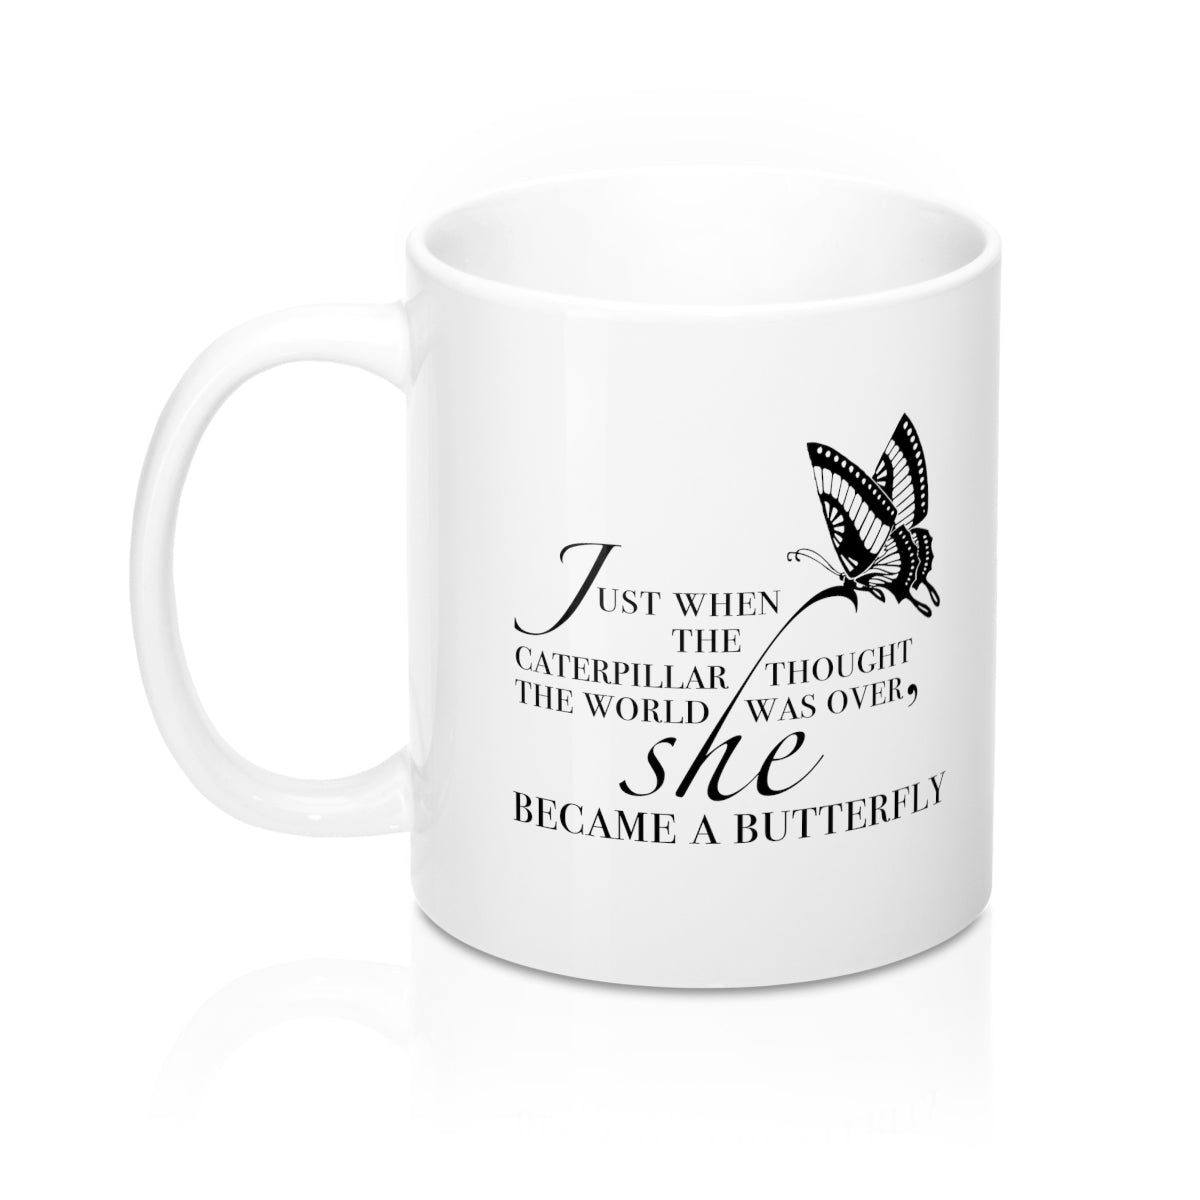 Just When the Caterpillar Thought the World was Over Mug (11oz)